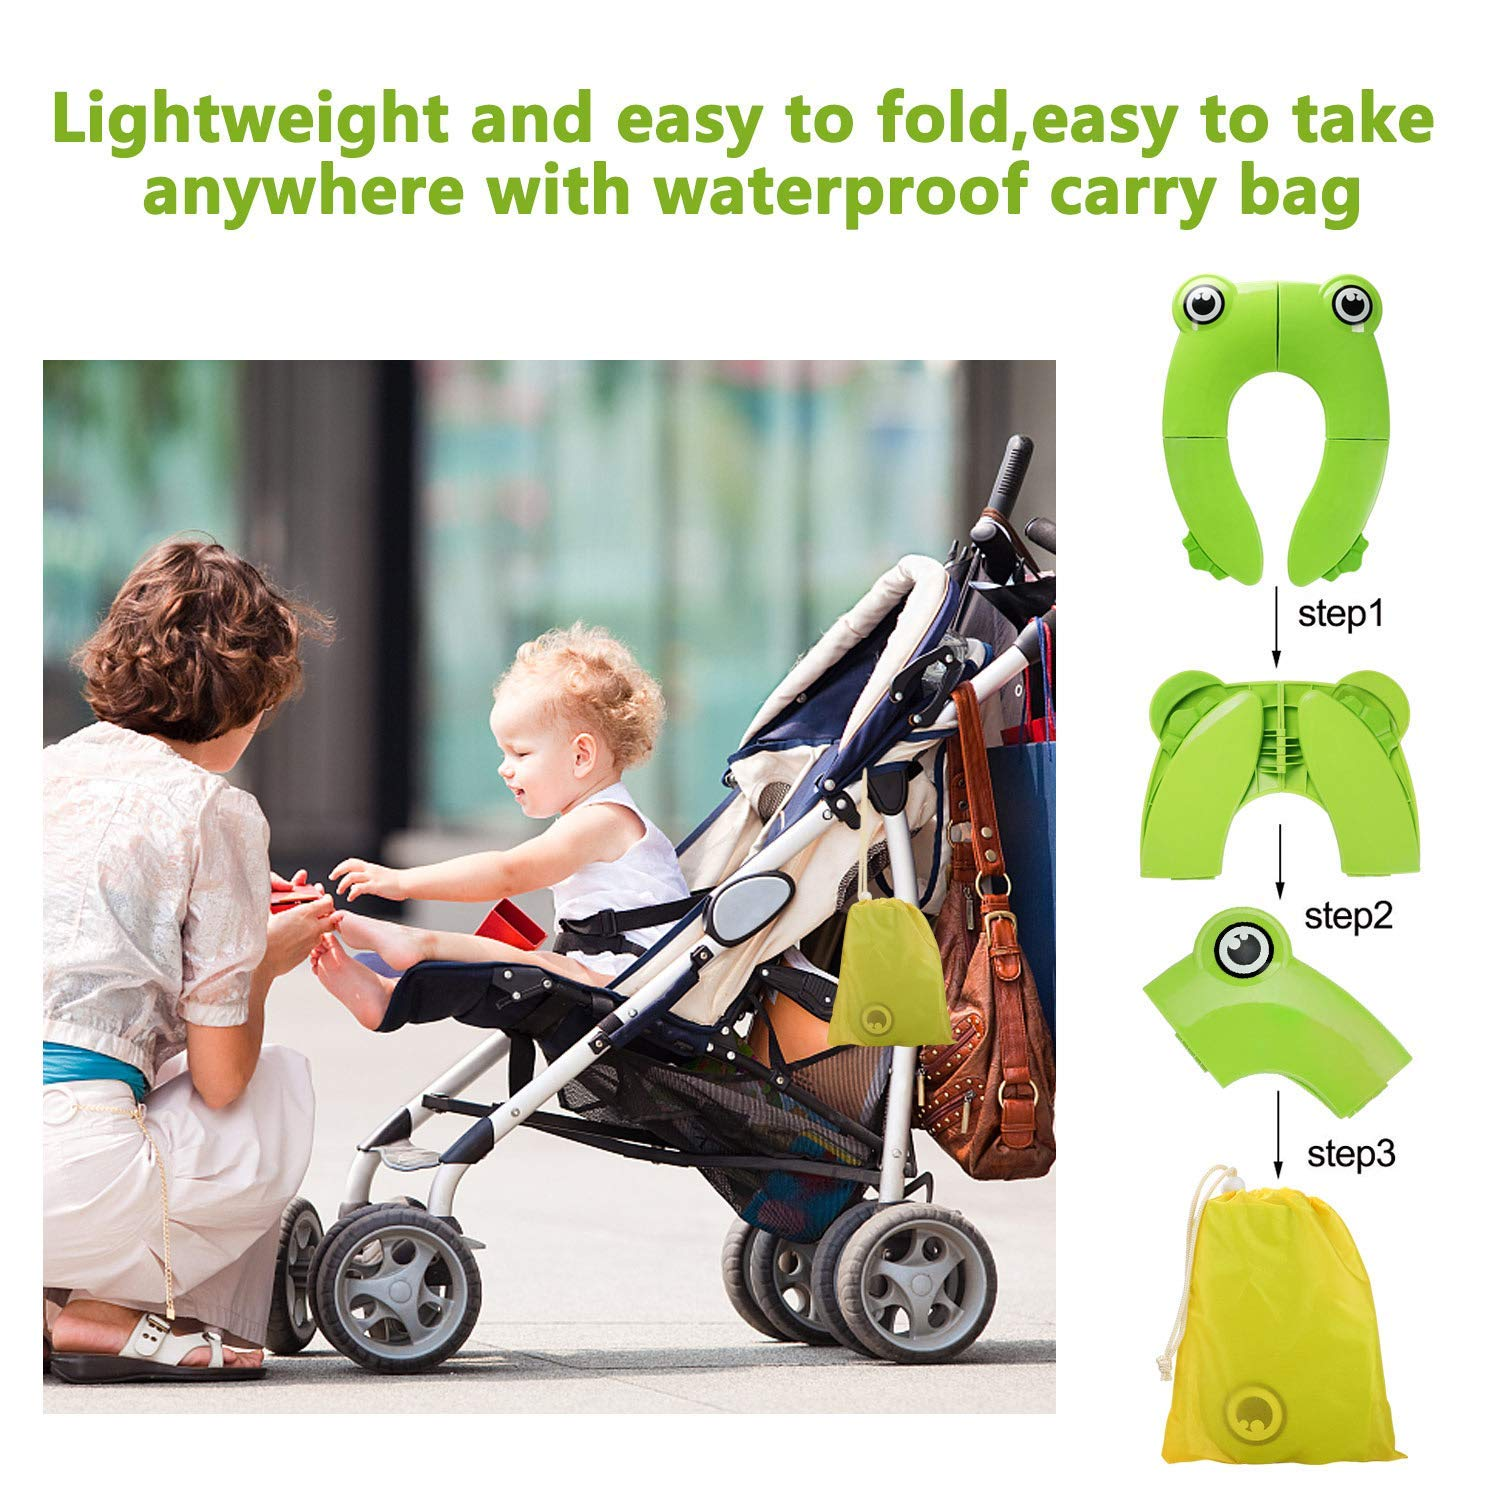 Toddlers and Kids Huiron Jinmi Portable Potty Seat On Toilet Foldable Travel Potty Training Seat with Large Non Slip Silicone Pads with Carry Bag Covers for Babies